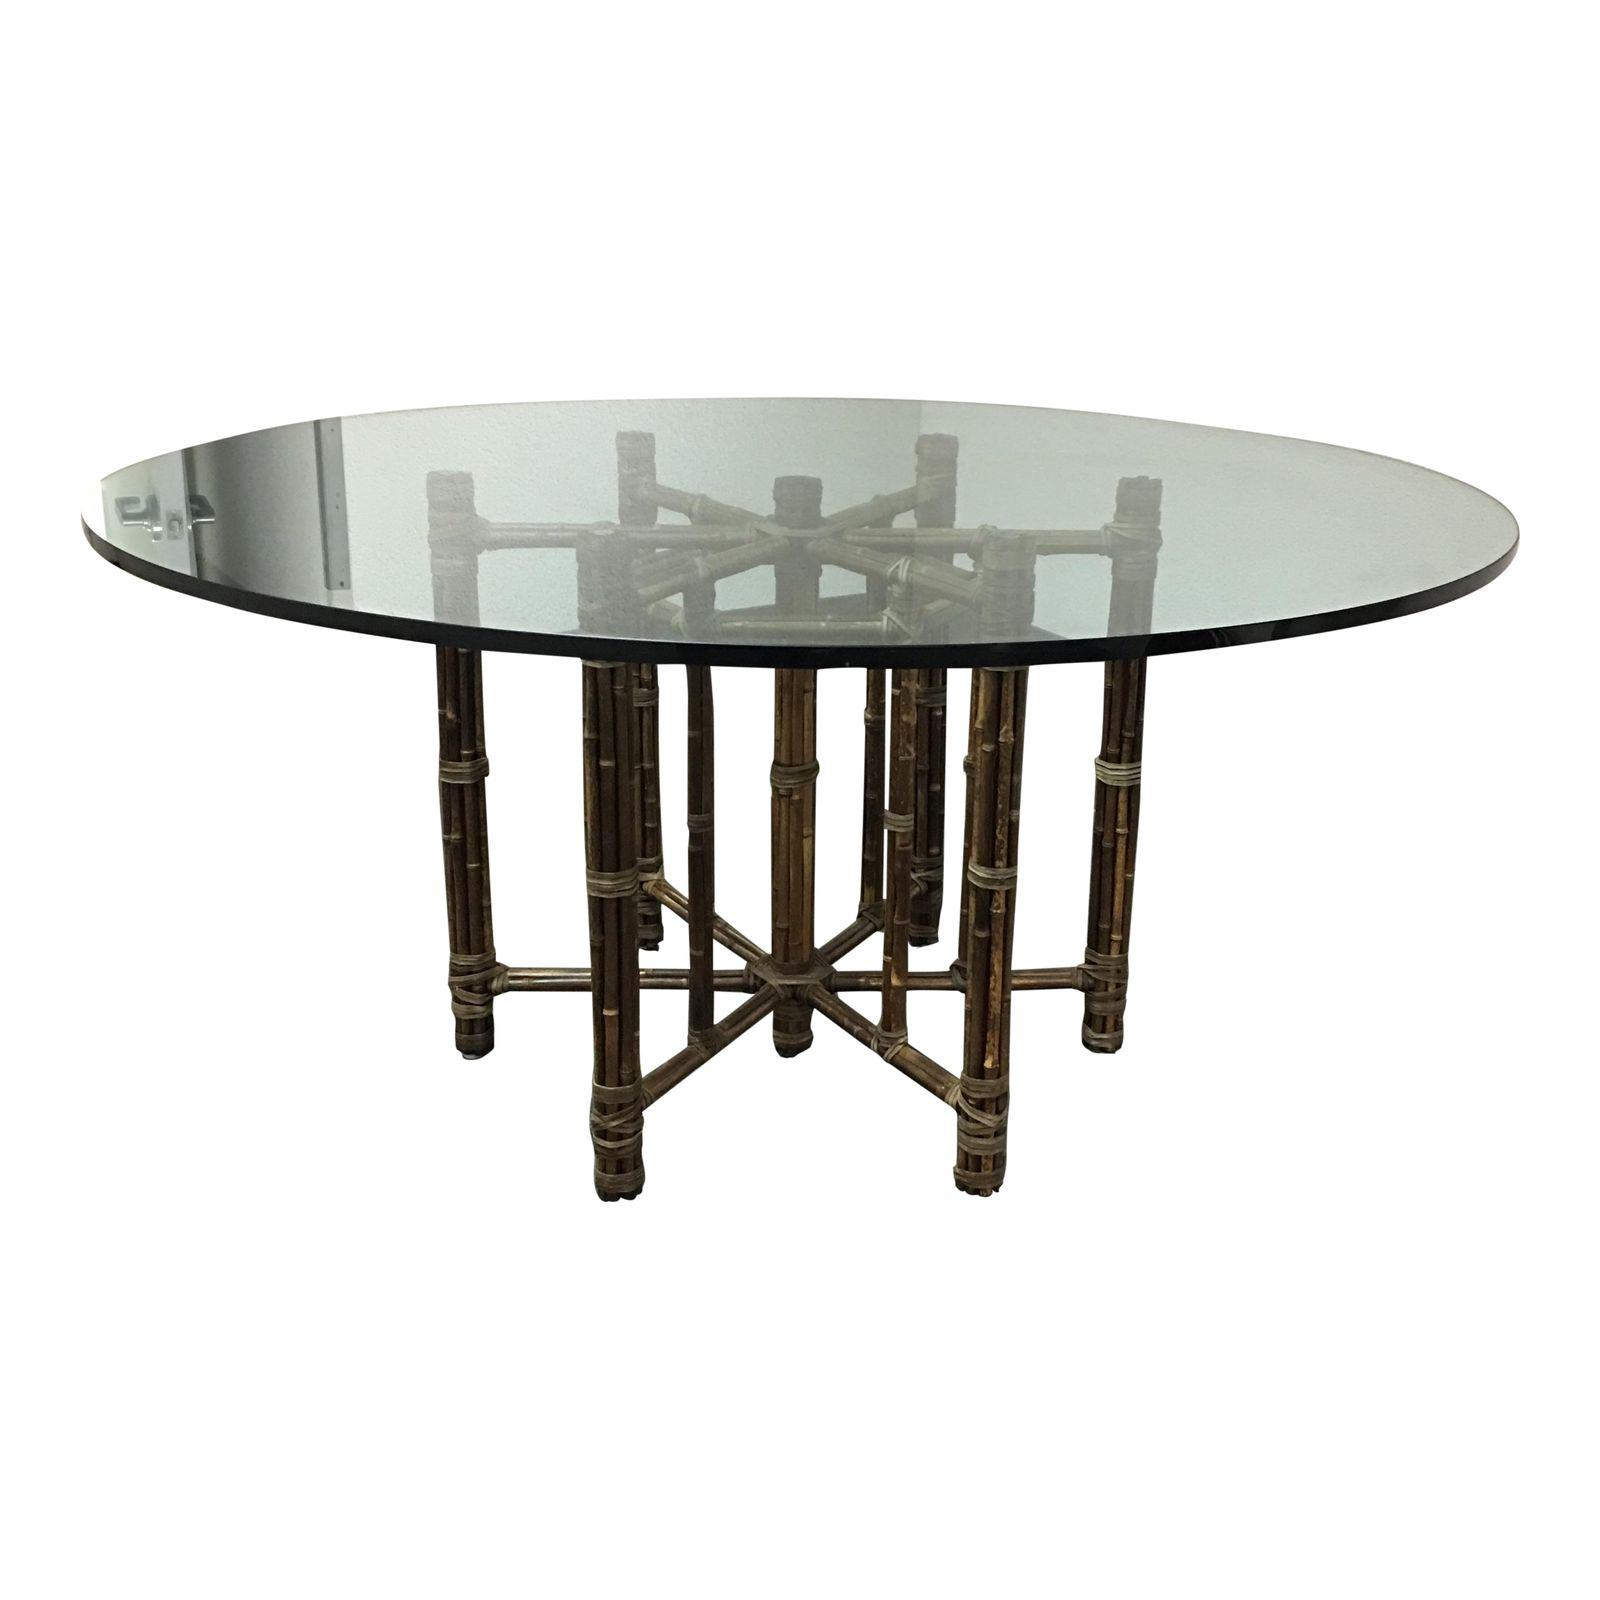 Bamboo Table With Design: McGuire Dining Table With Bamboo Base + Glass Top